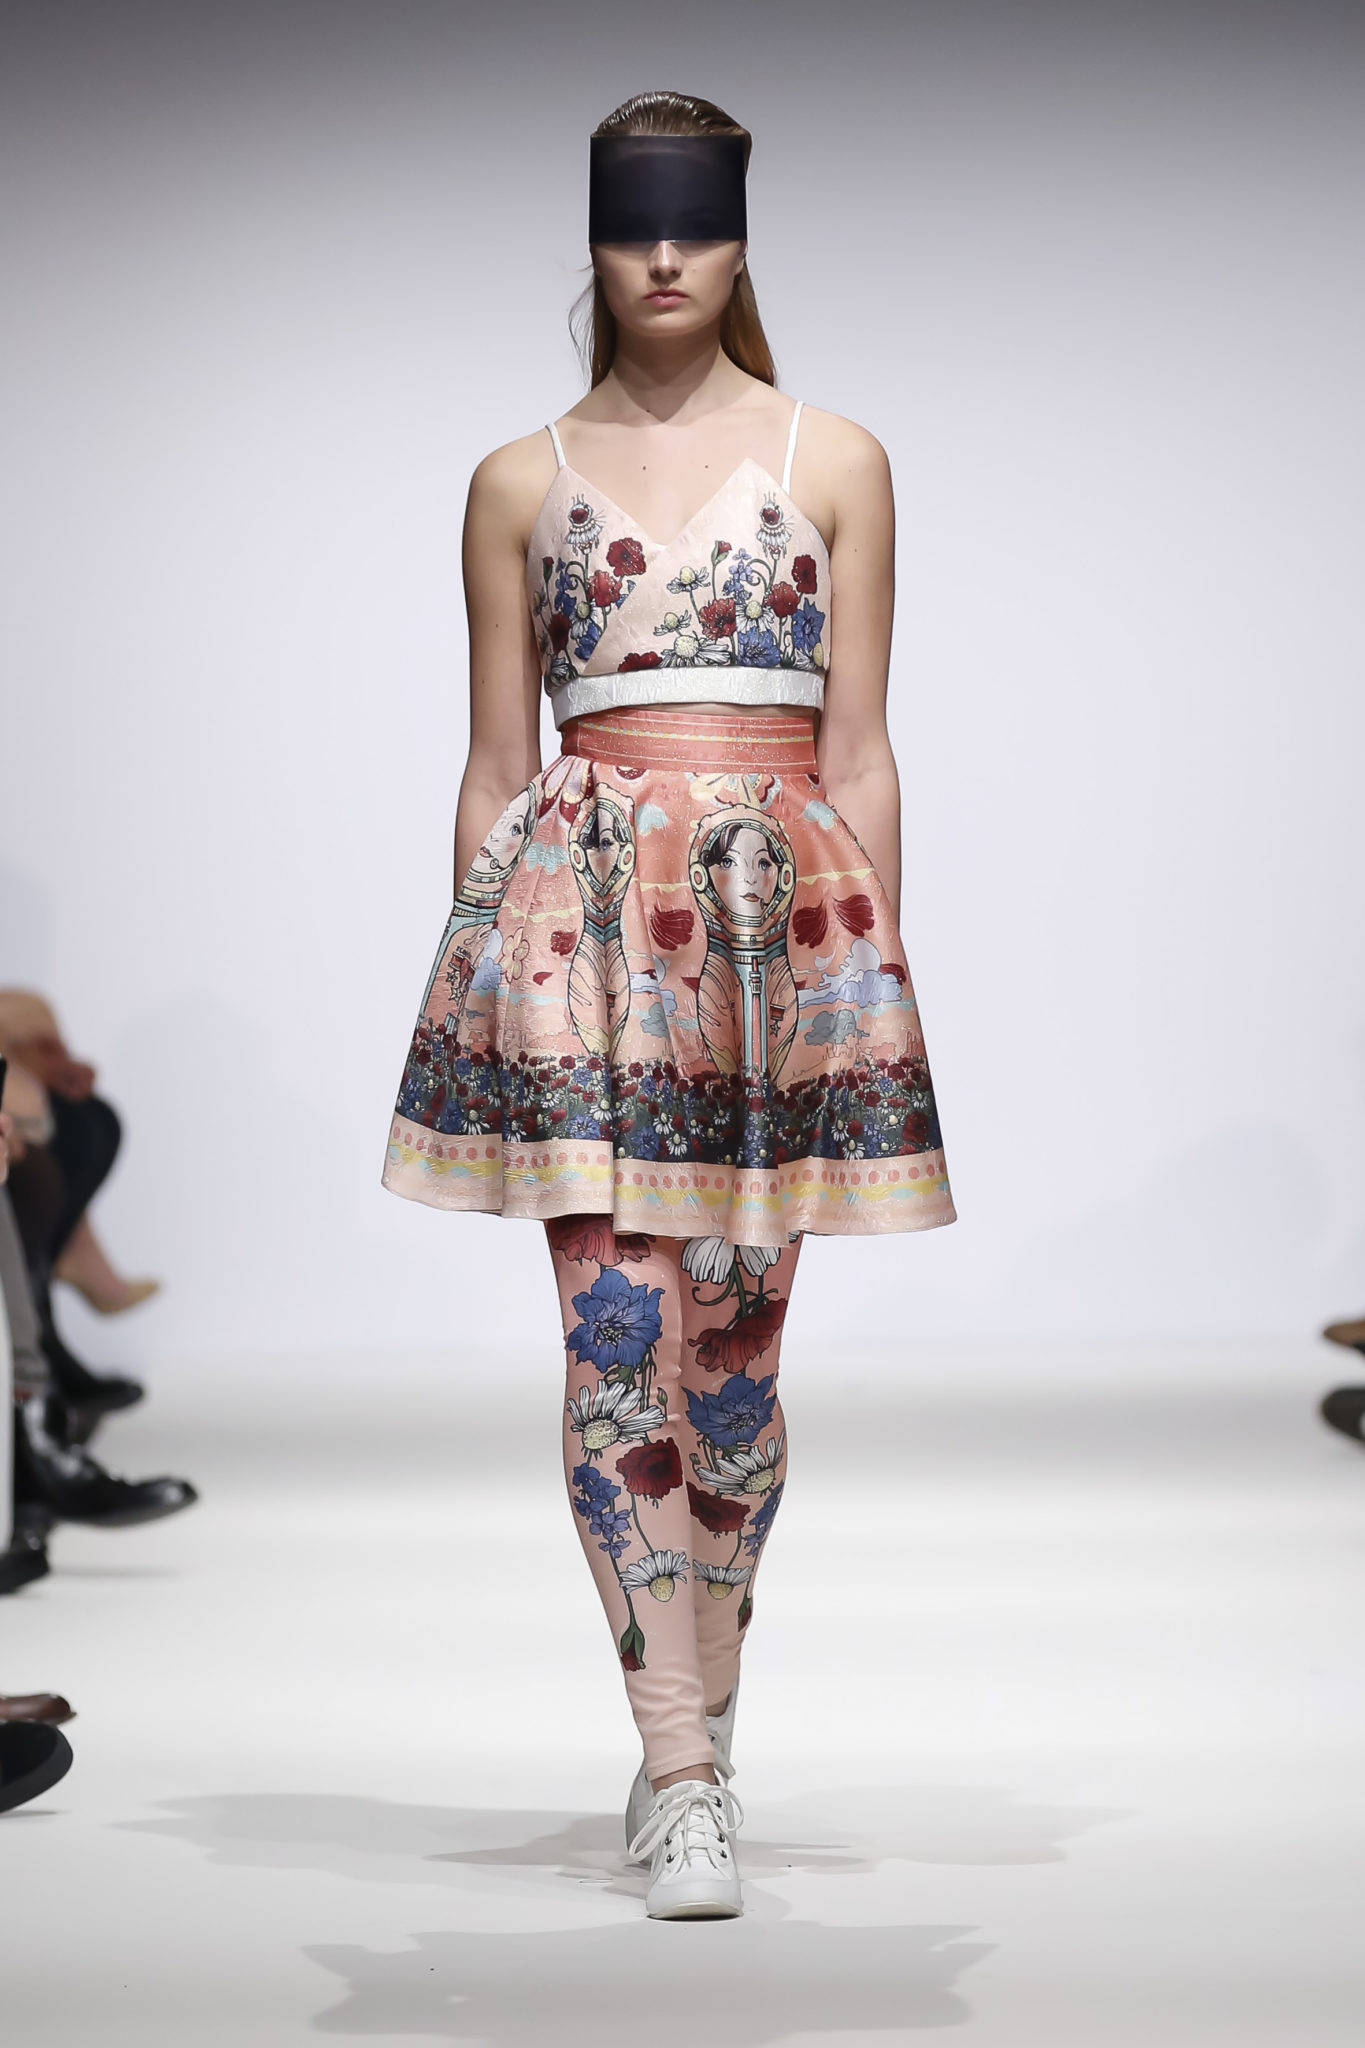 Designer: Iconic presented by DIPT, unknown model